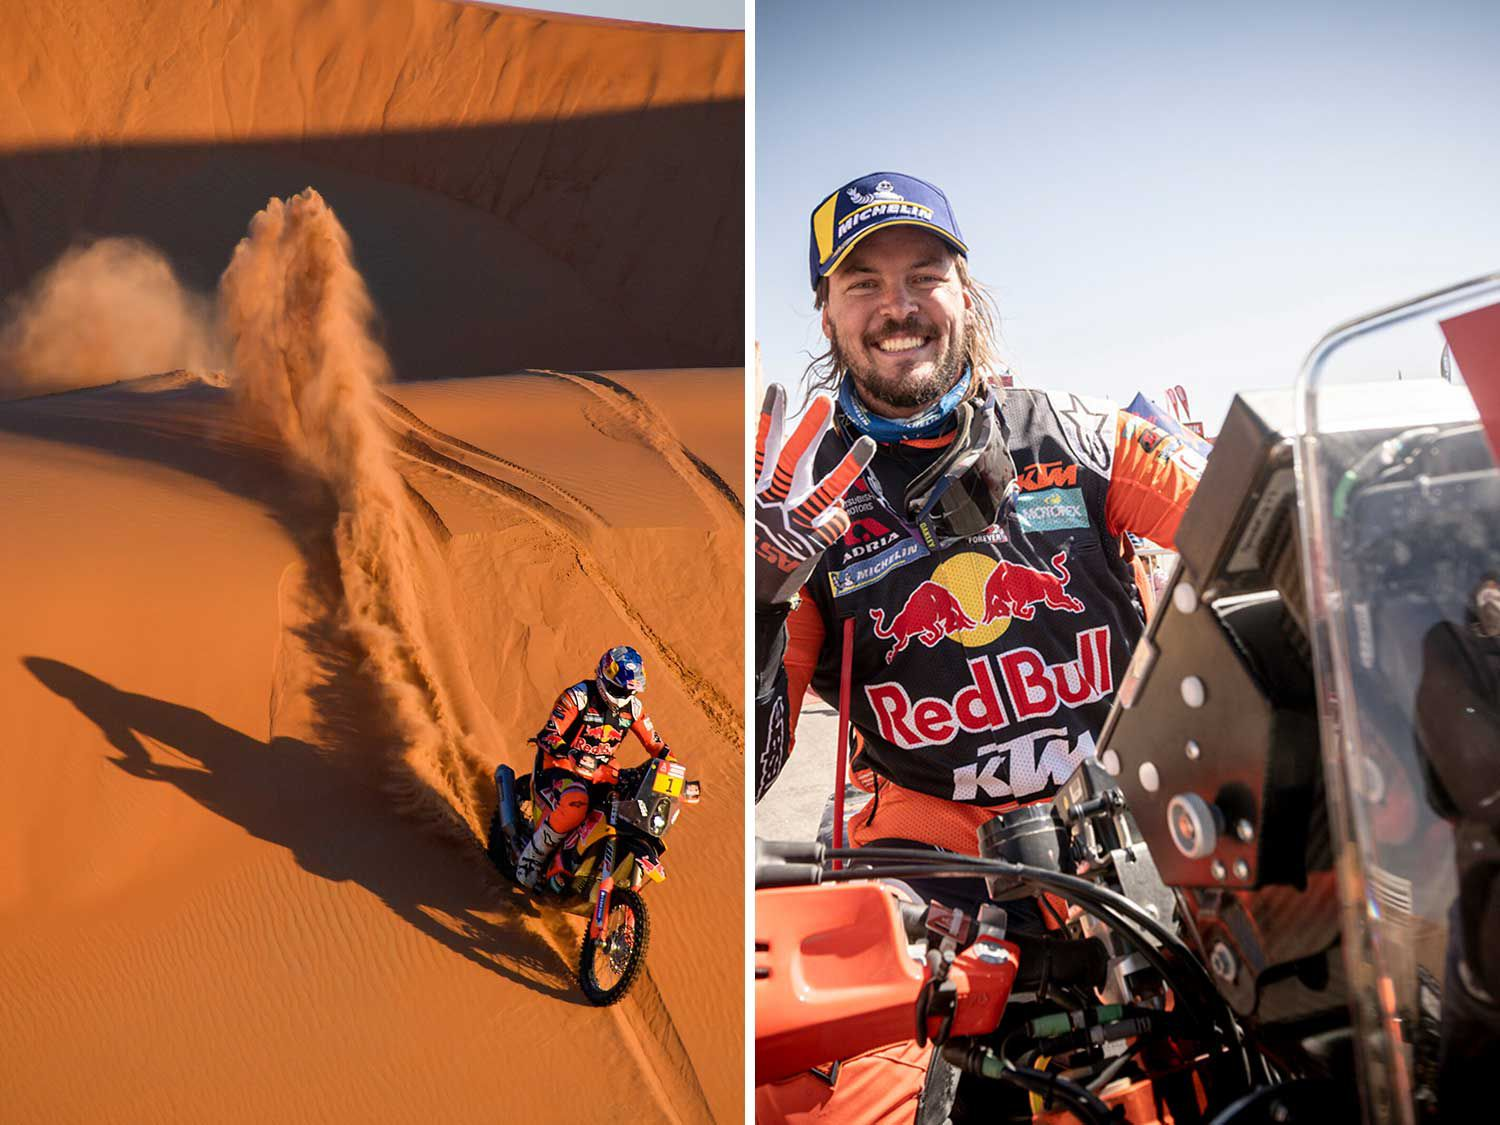 <strong>Left:</strong> Toby Price on his KTM of the Red Bull KTM Factory Team is being chased by the helicopter during Stage 4 of the Dakar Rally, between Neom and Al-'Ula. <strong>Right:</strong> Red Bull KTM Factory rider Toby Price (Australia) at the finish line of 2020 Dakar Rally.